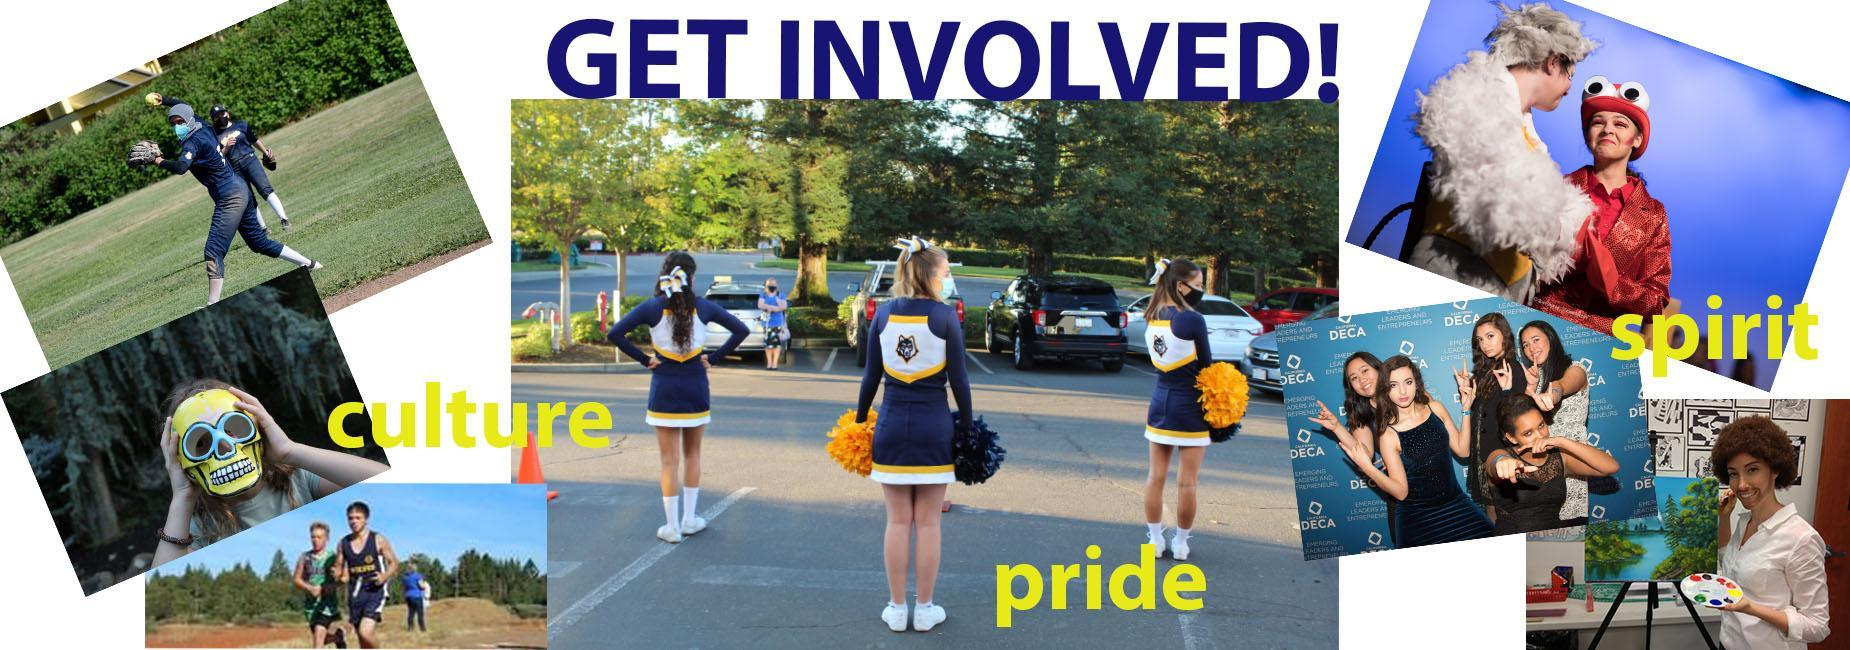 Get involved in clubs and activities